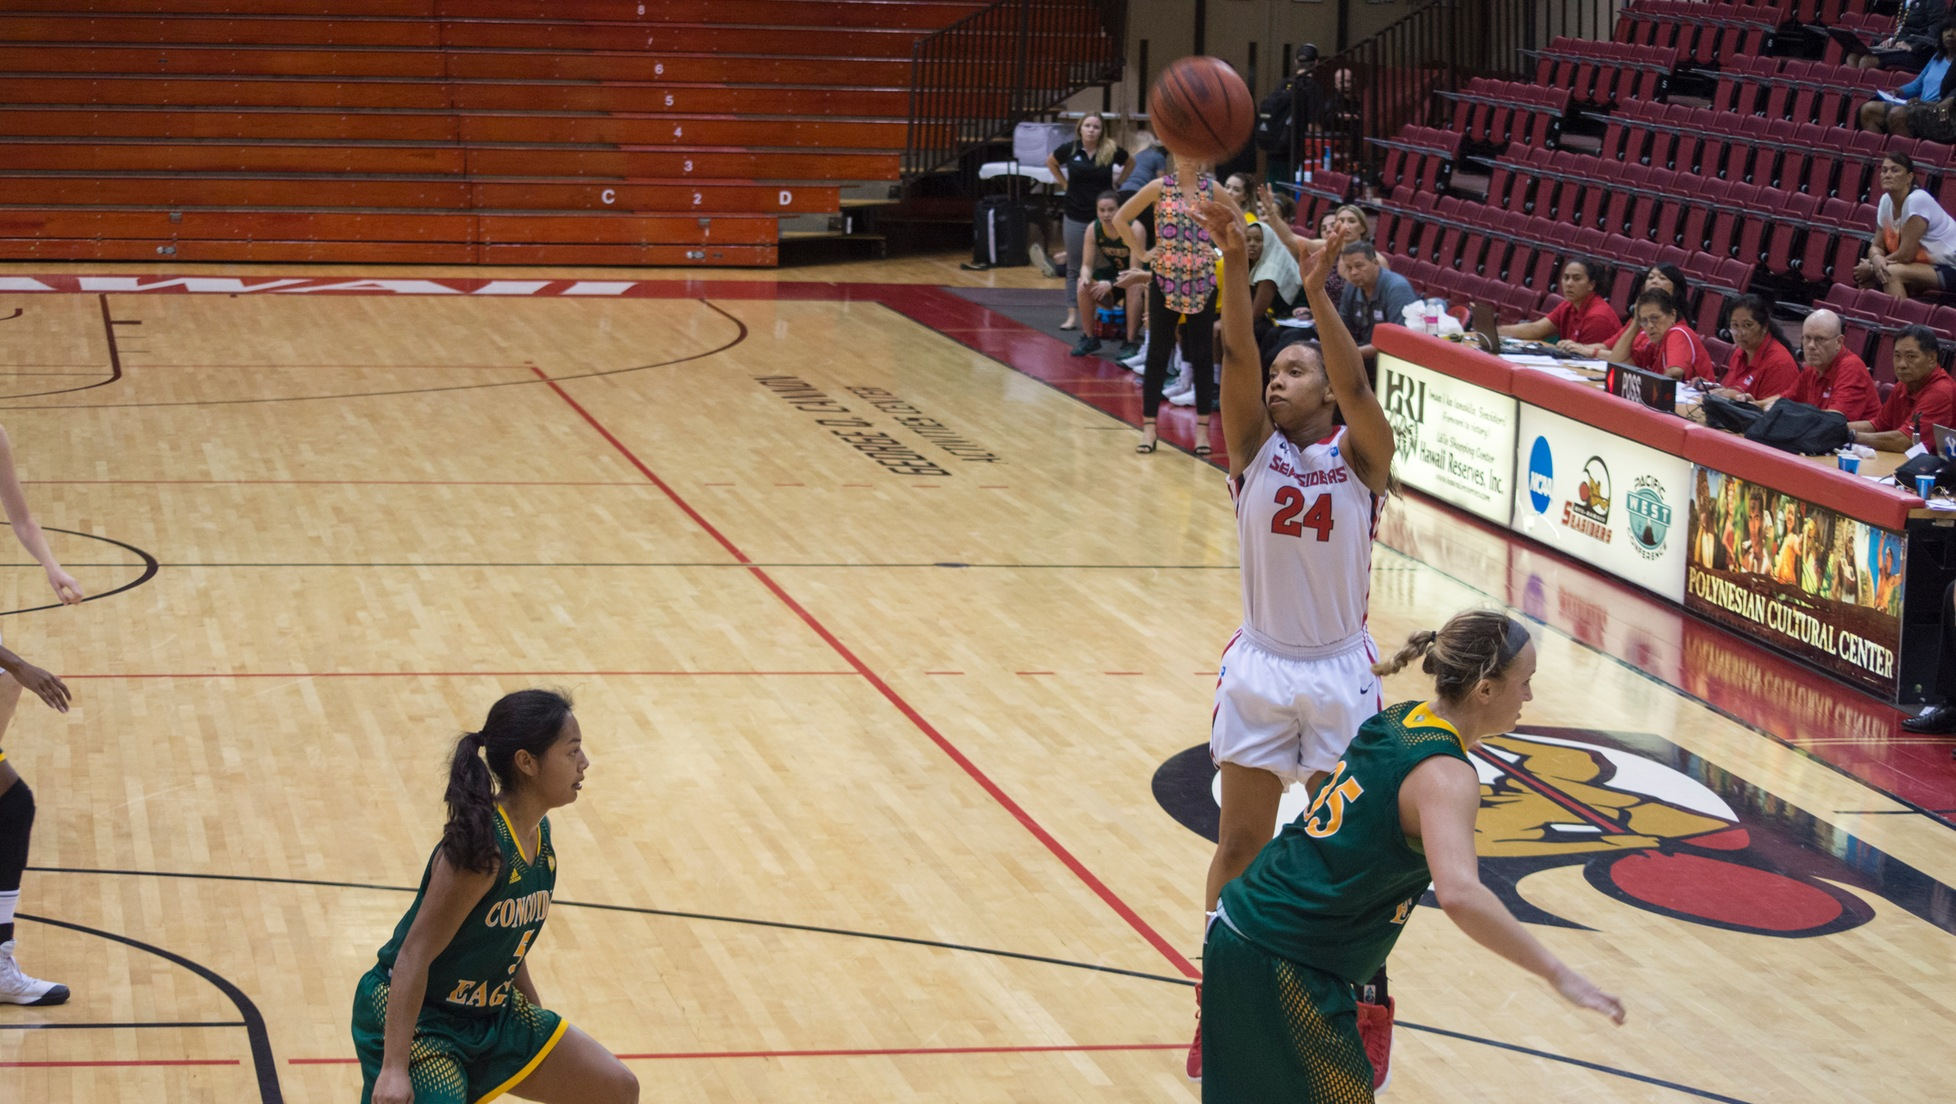 Tyvette White pulls up for a jumper in the Cannon Activities Center.